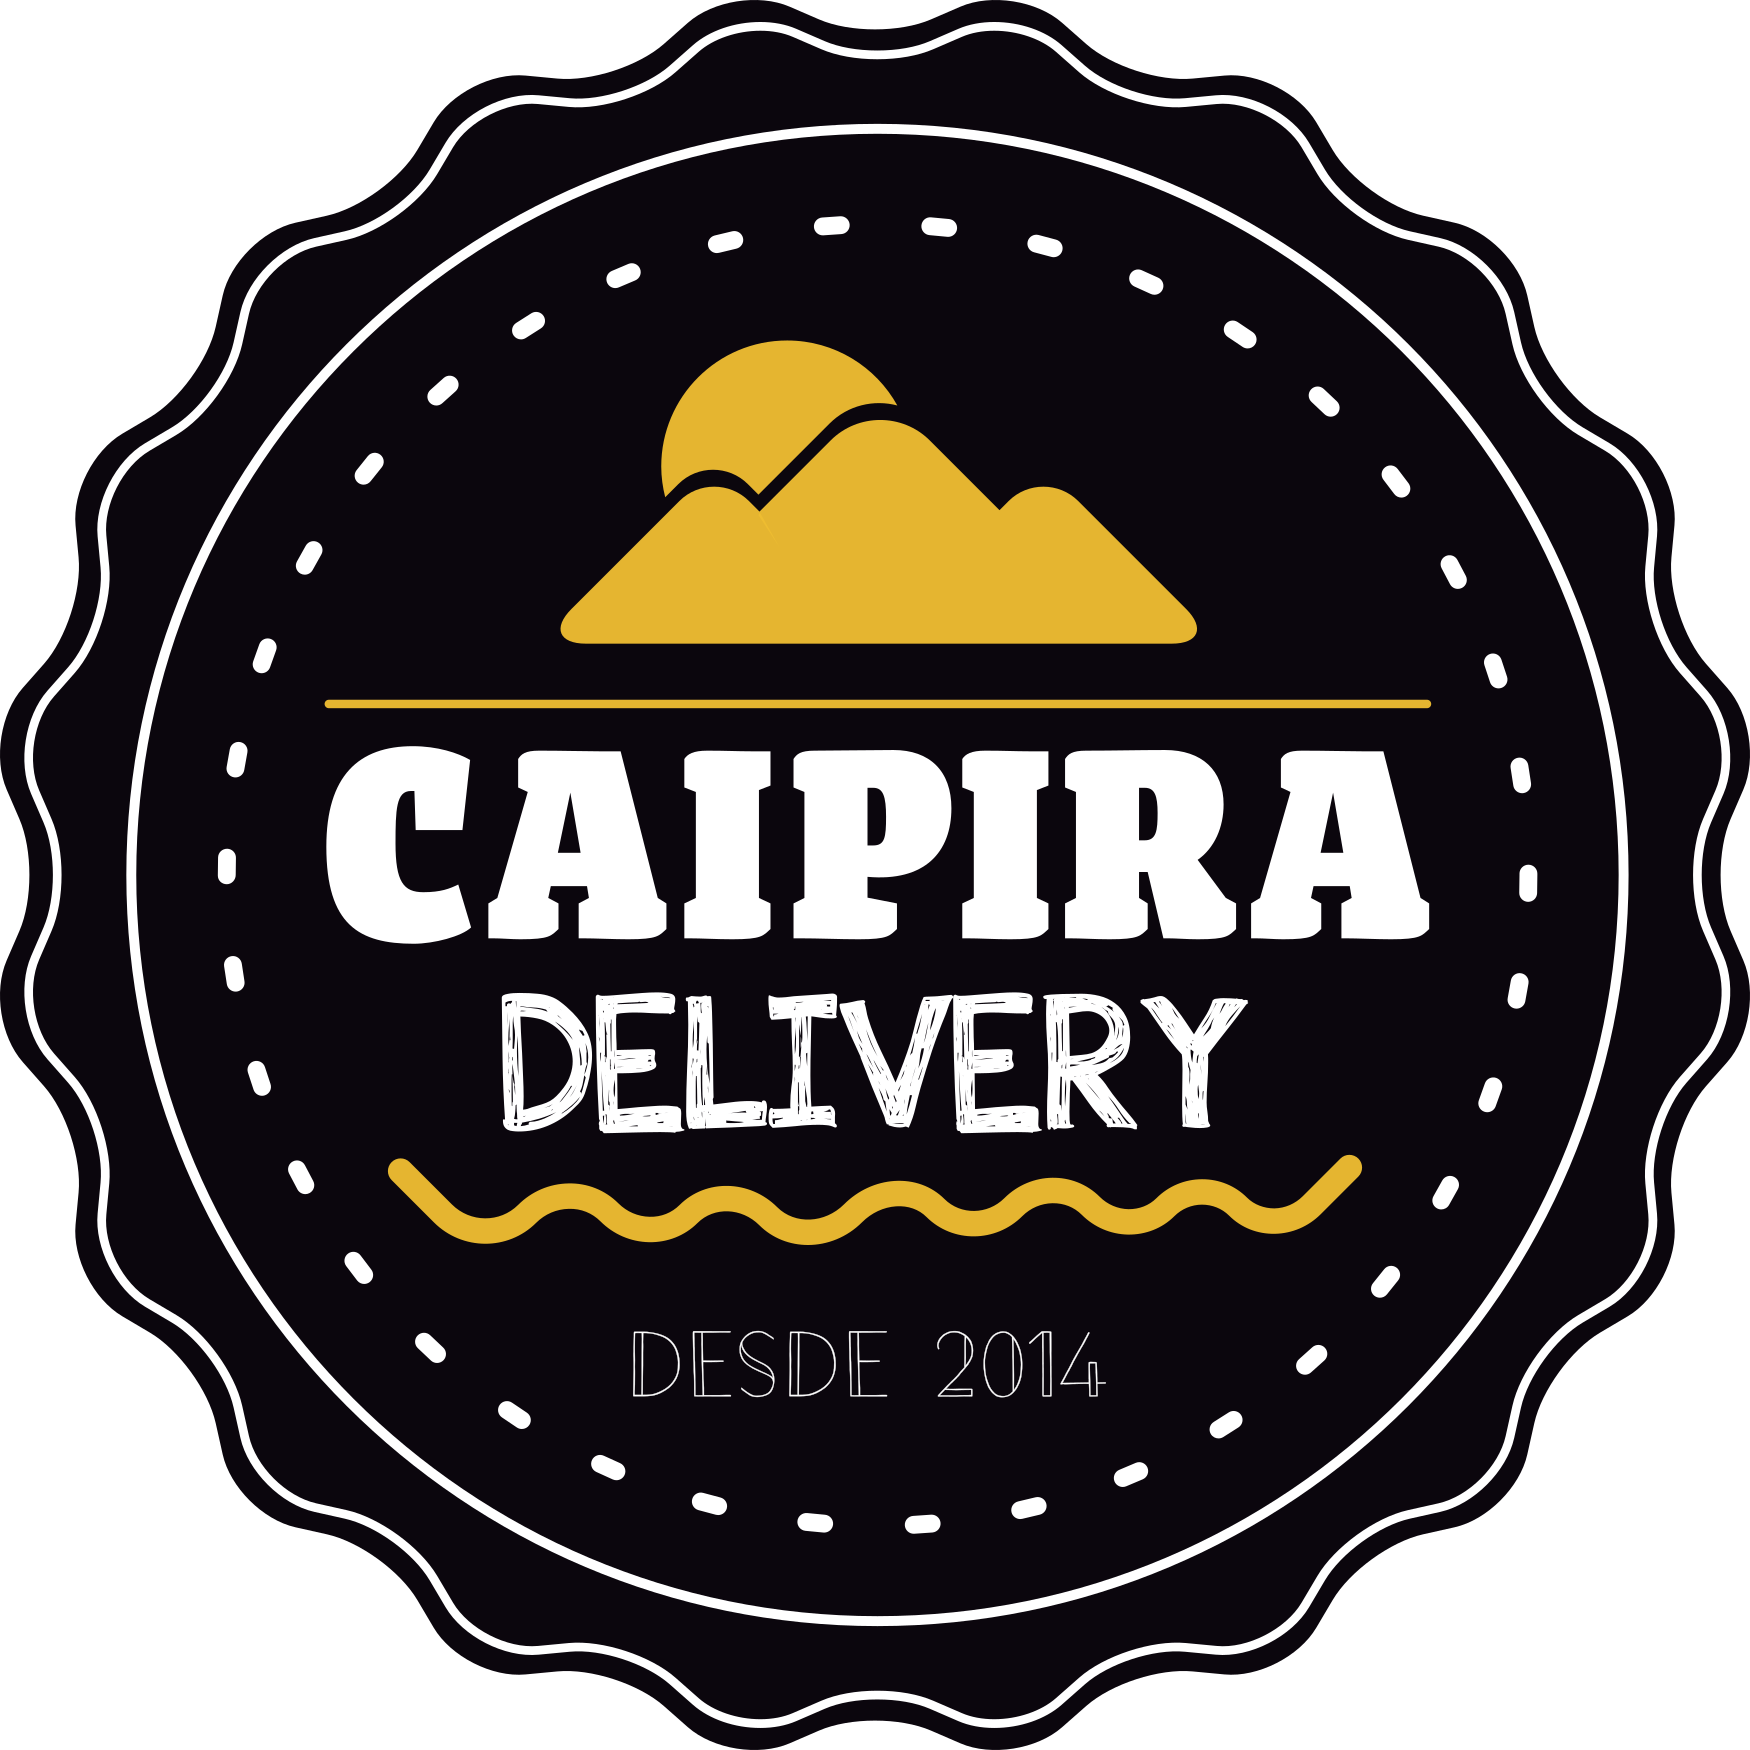 Caipira Delivery